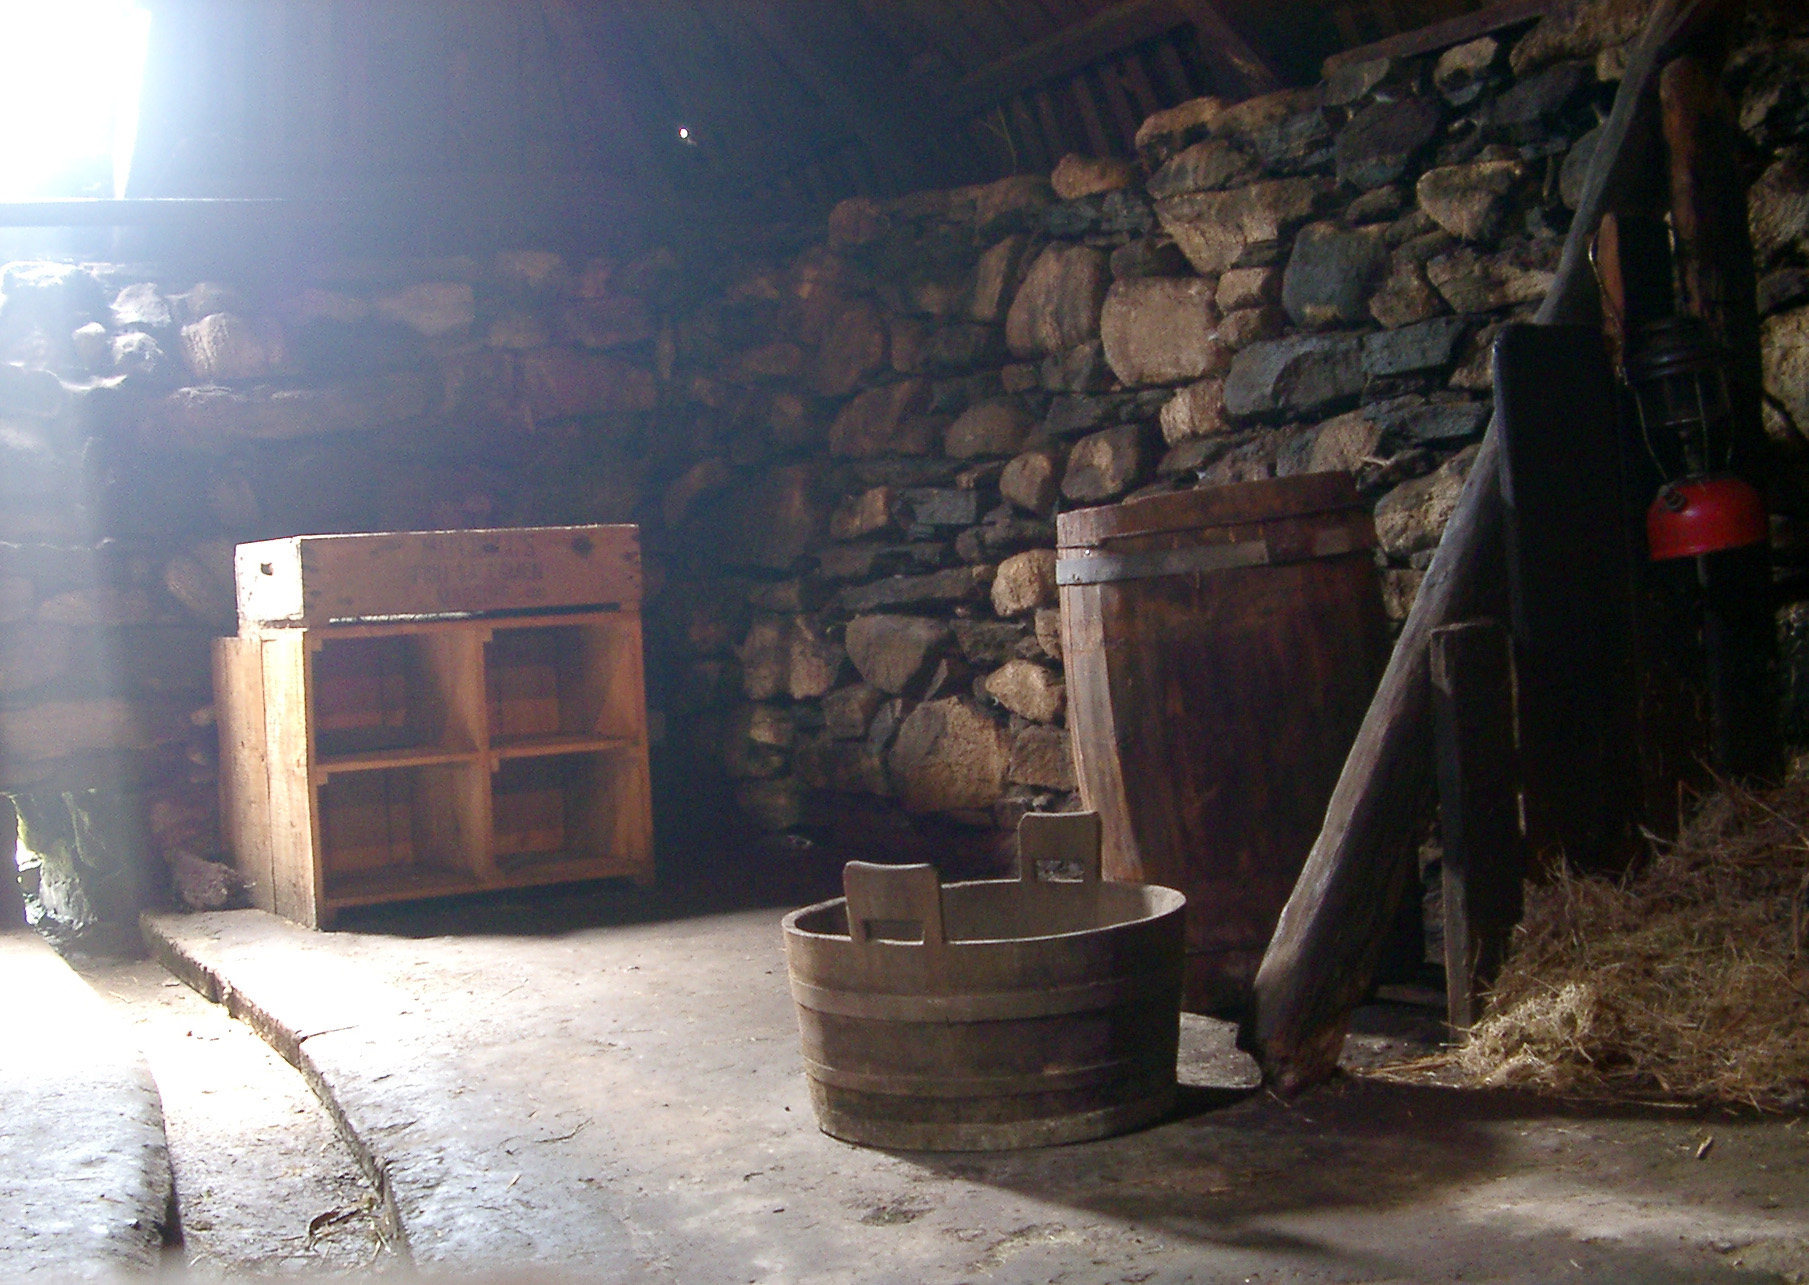 Interior of Traditional Scottish Stone Blackhouse with Historic Artifacts